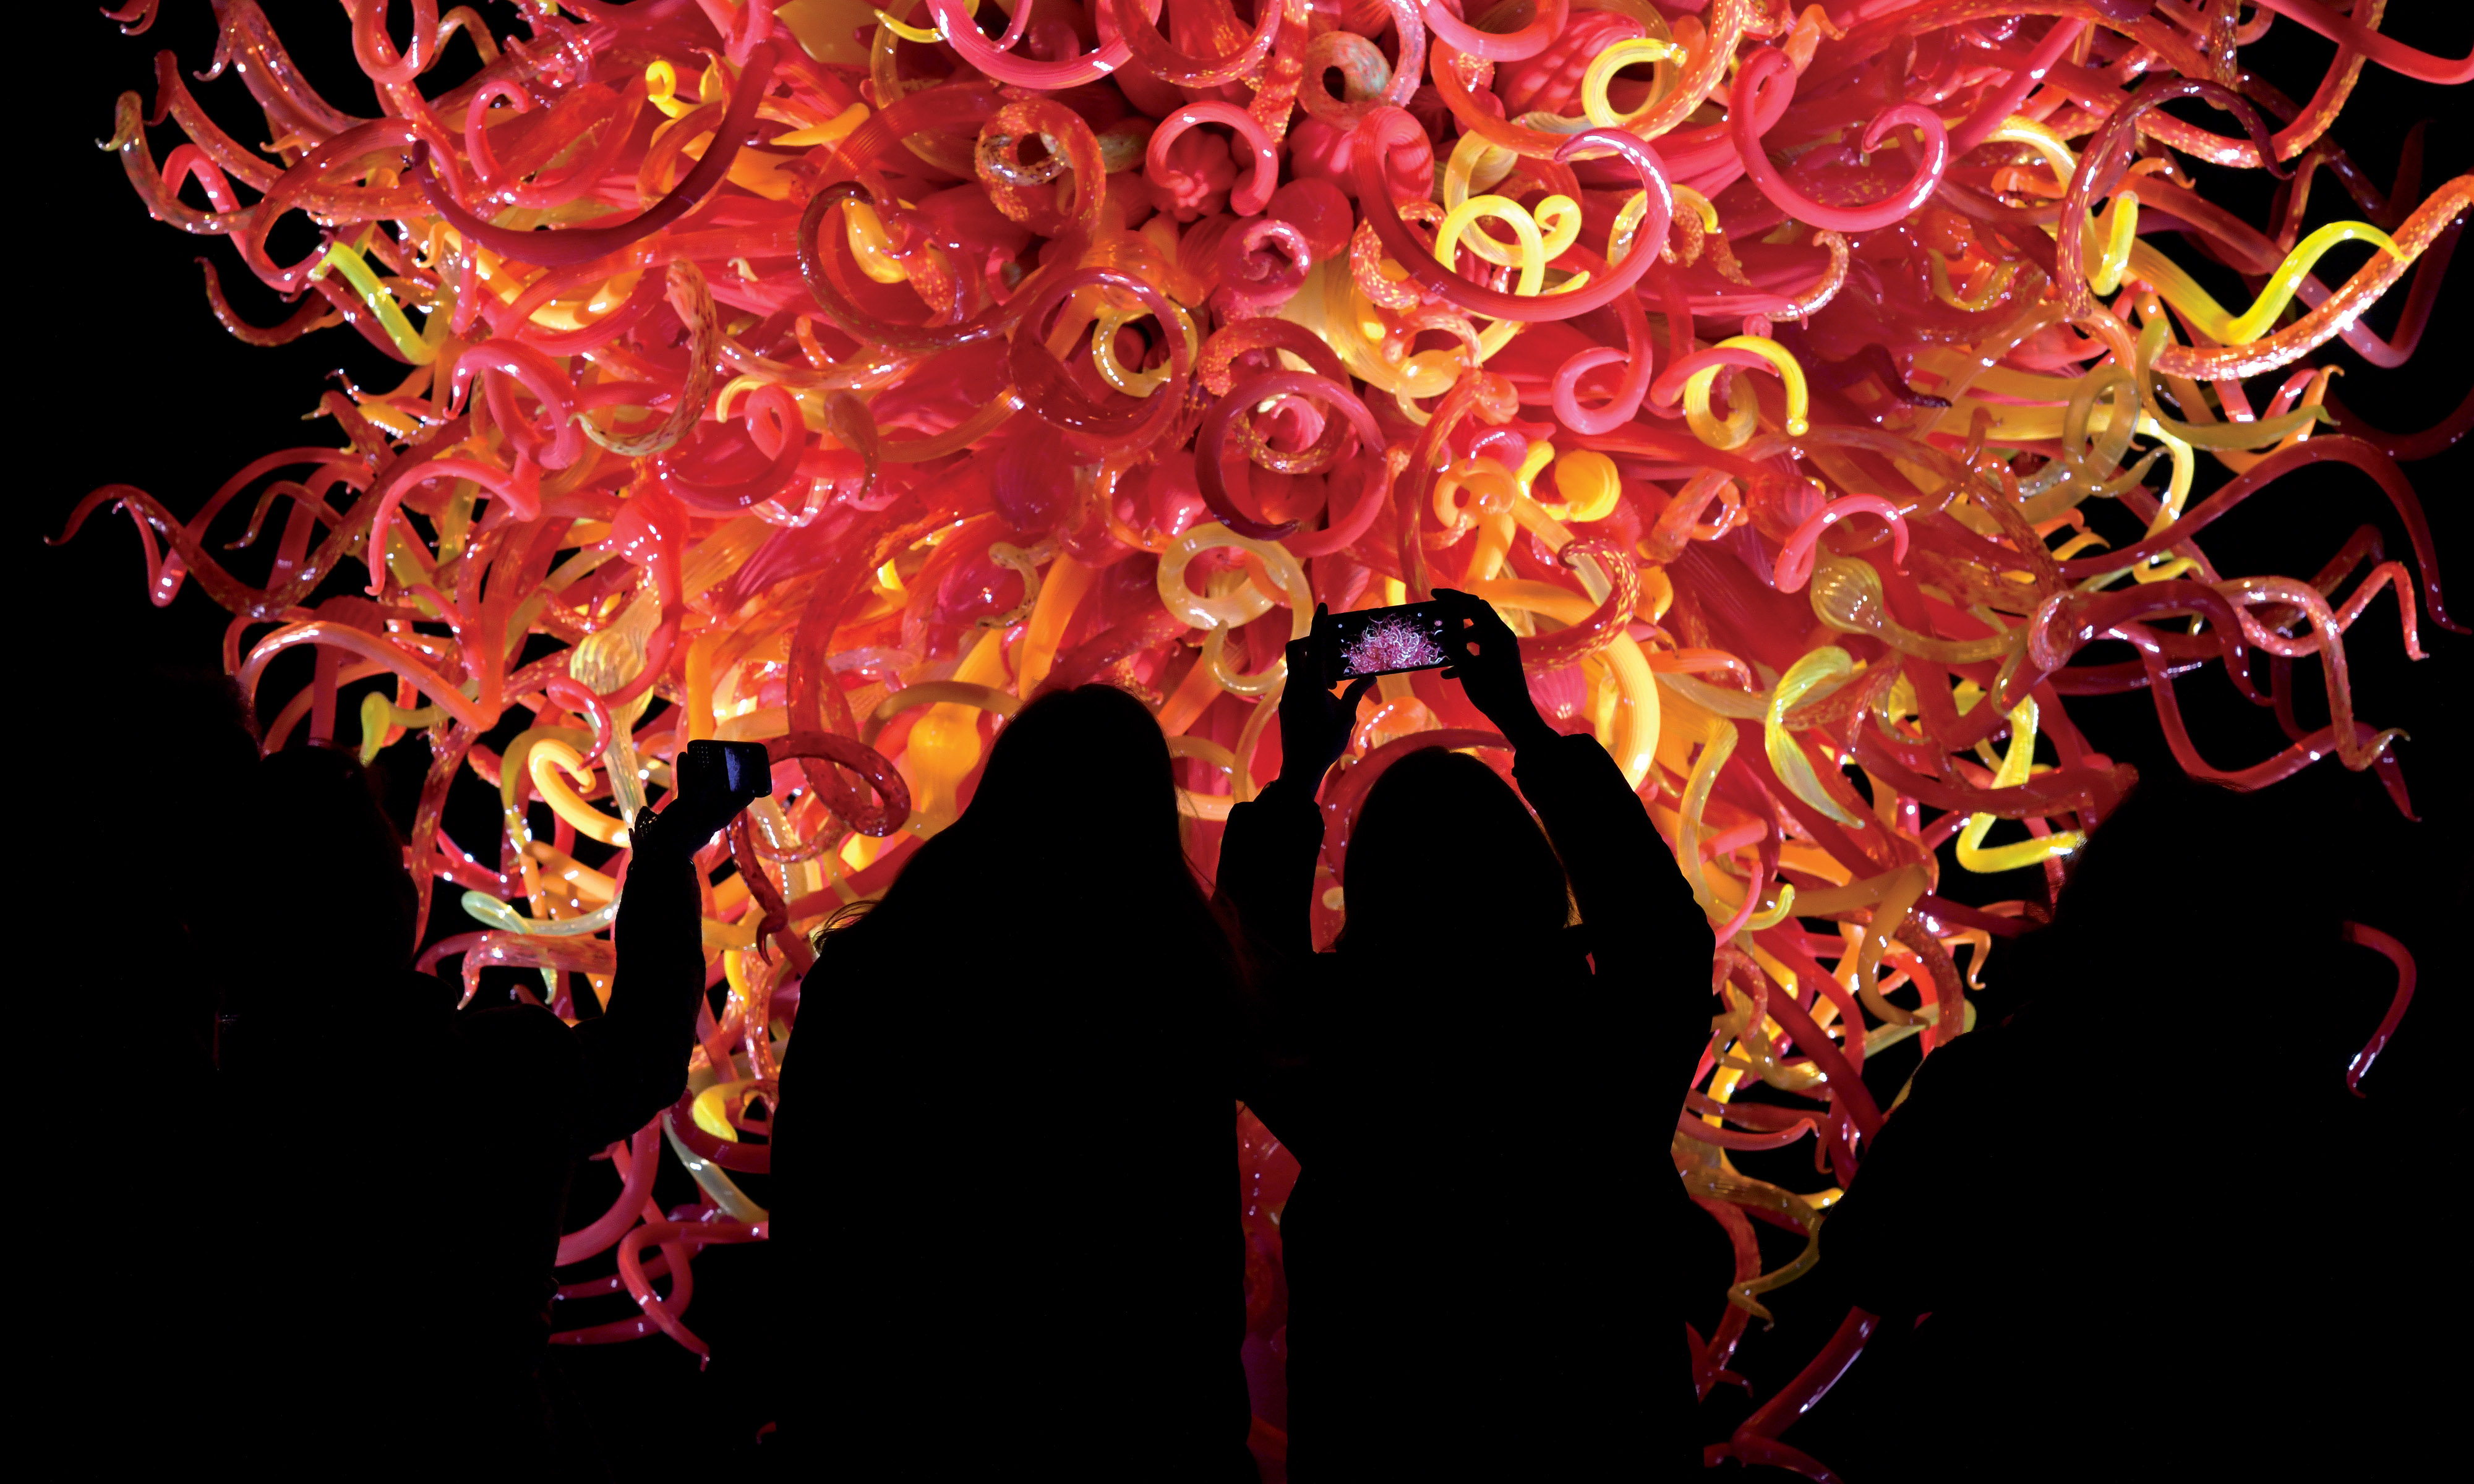 Dale Chihuly's Summer Sun at night